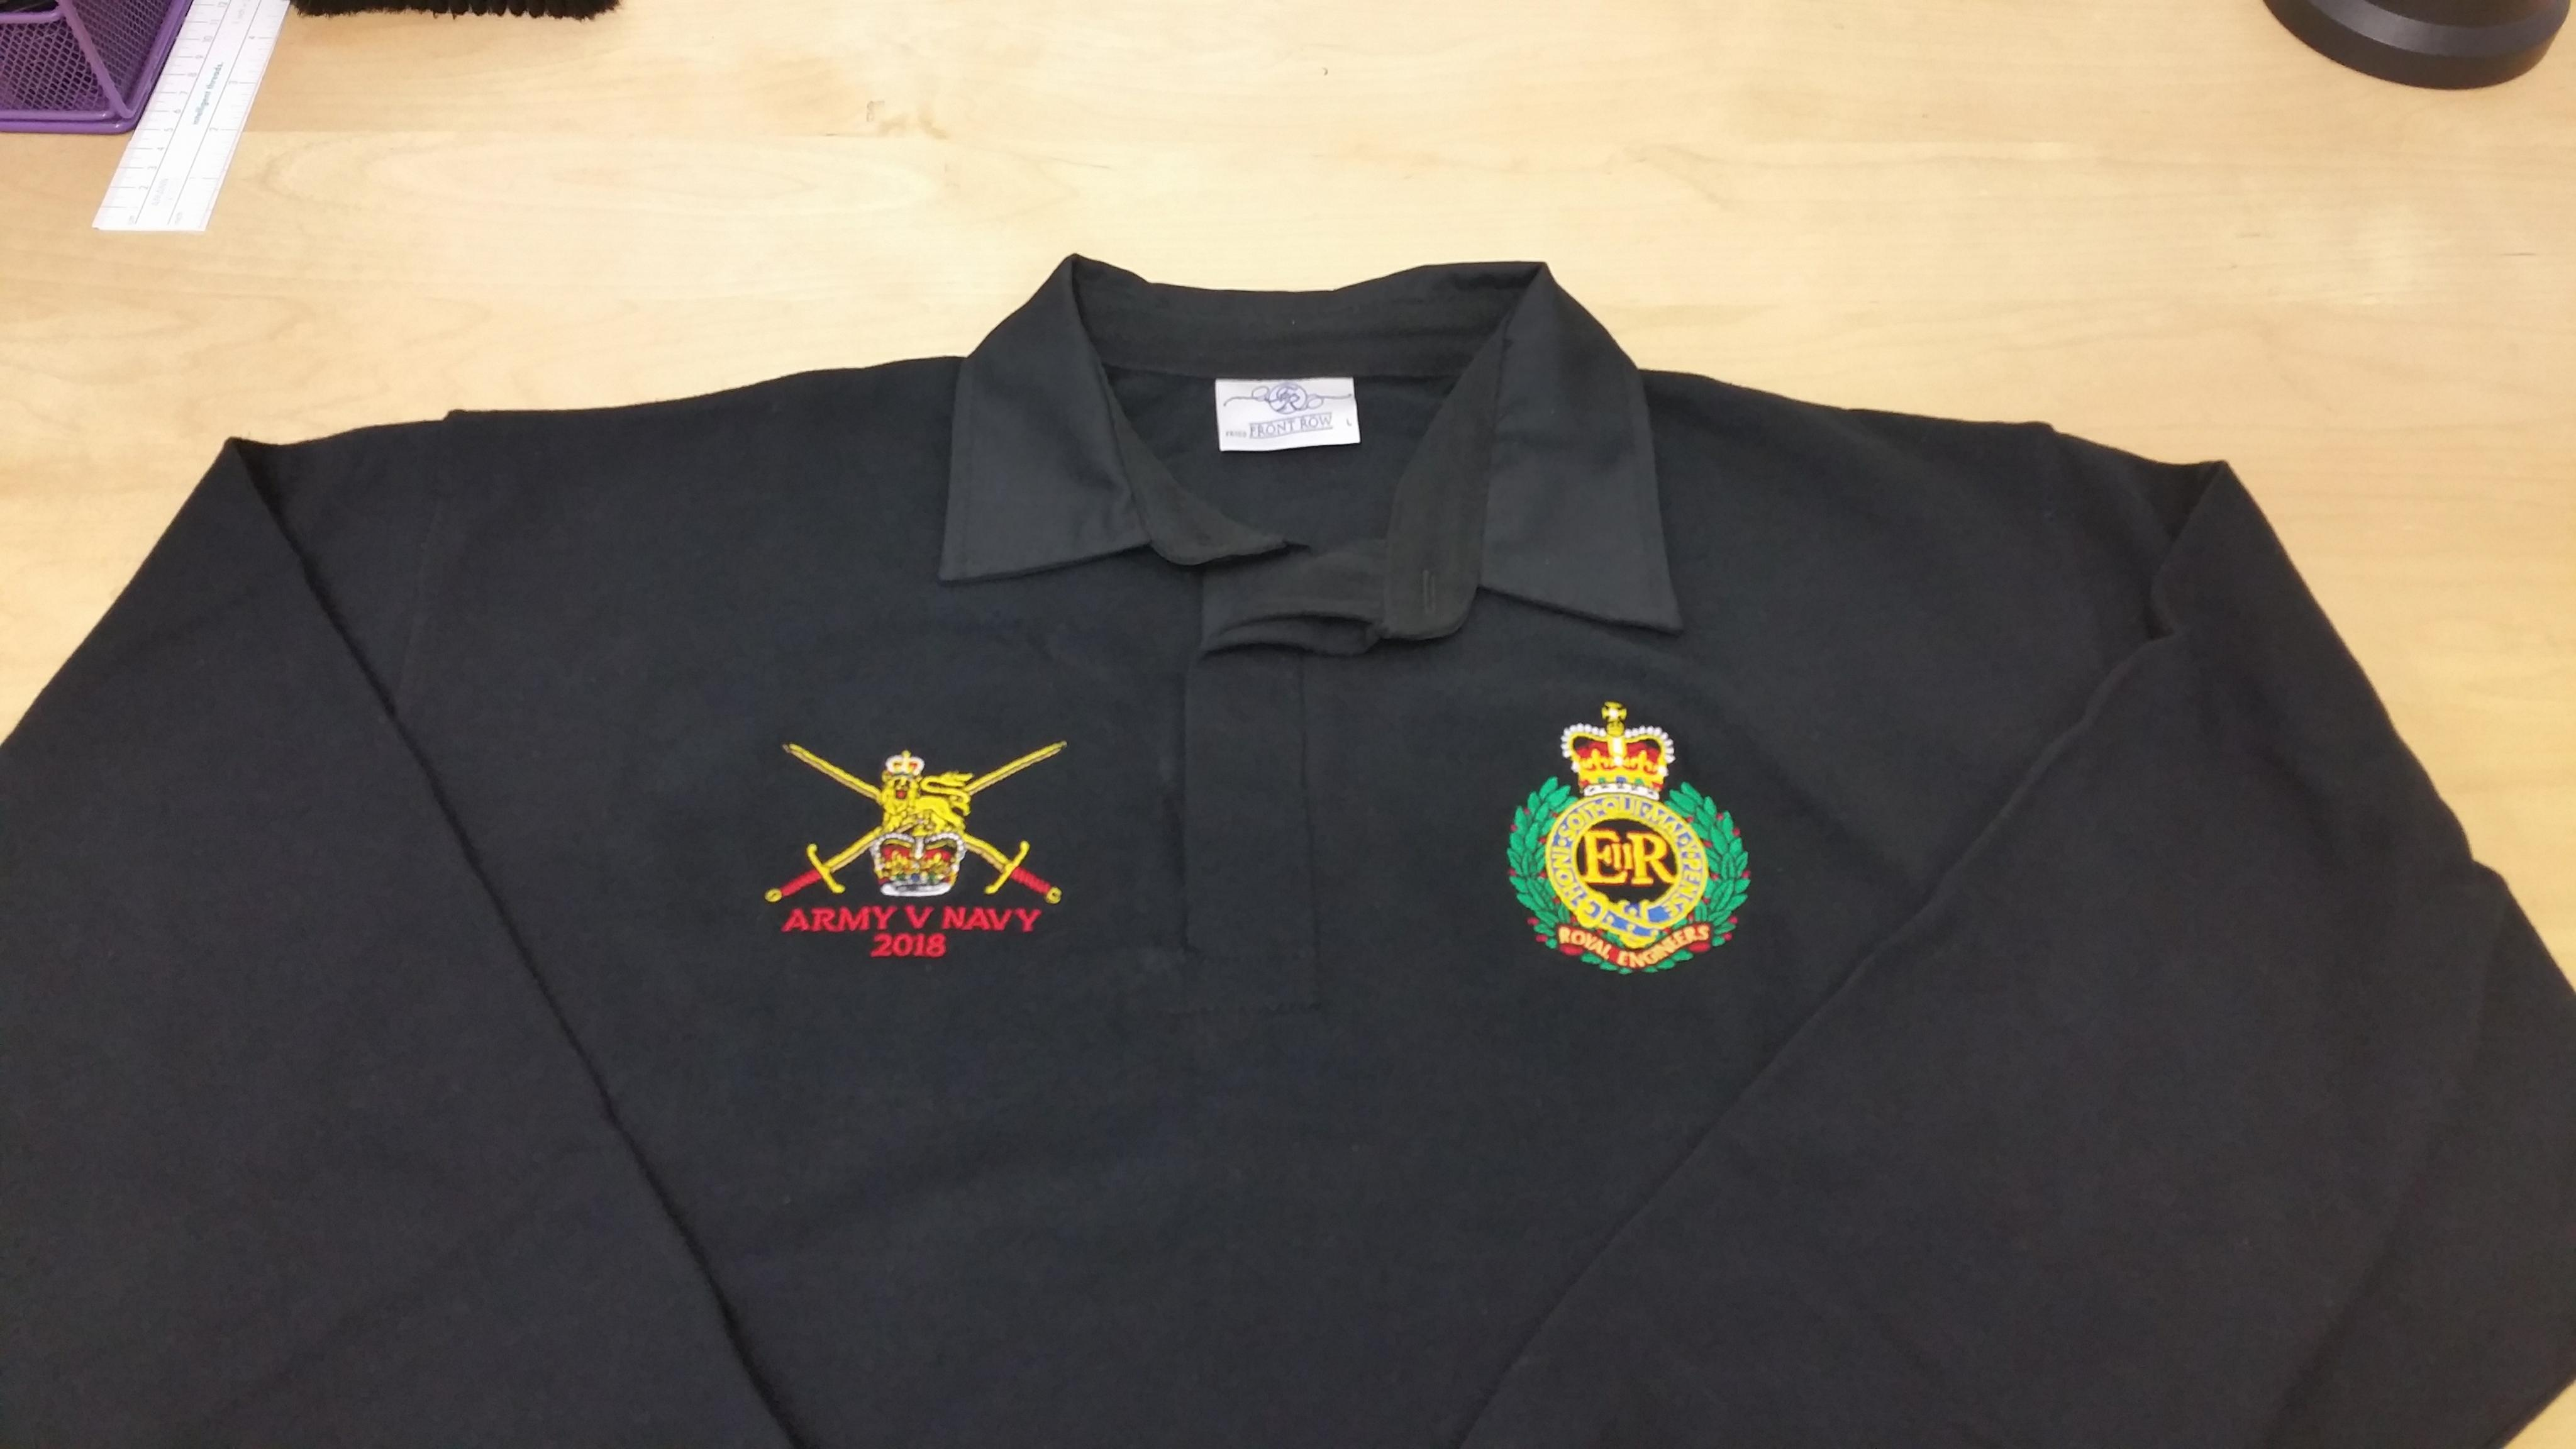 ARMY v NAVY 2018 ROYAL ENGINEERS / ARMY Rugby Shirt - UK ...